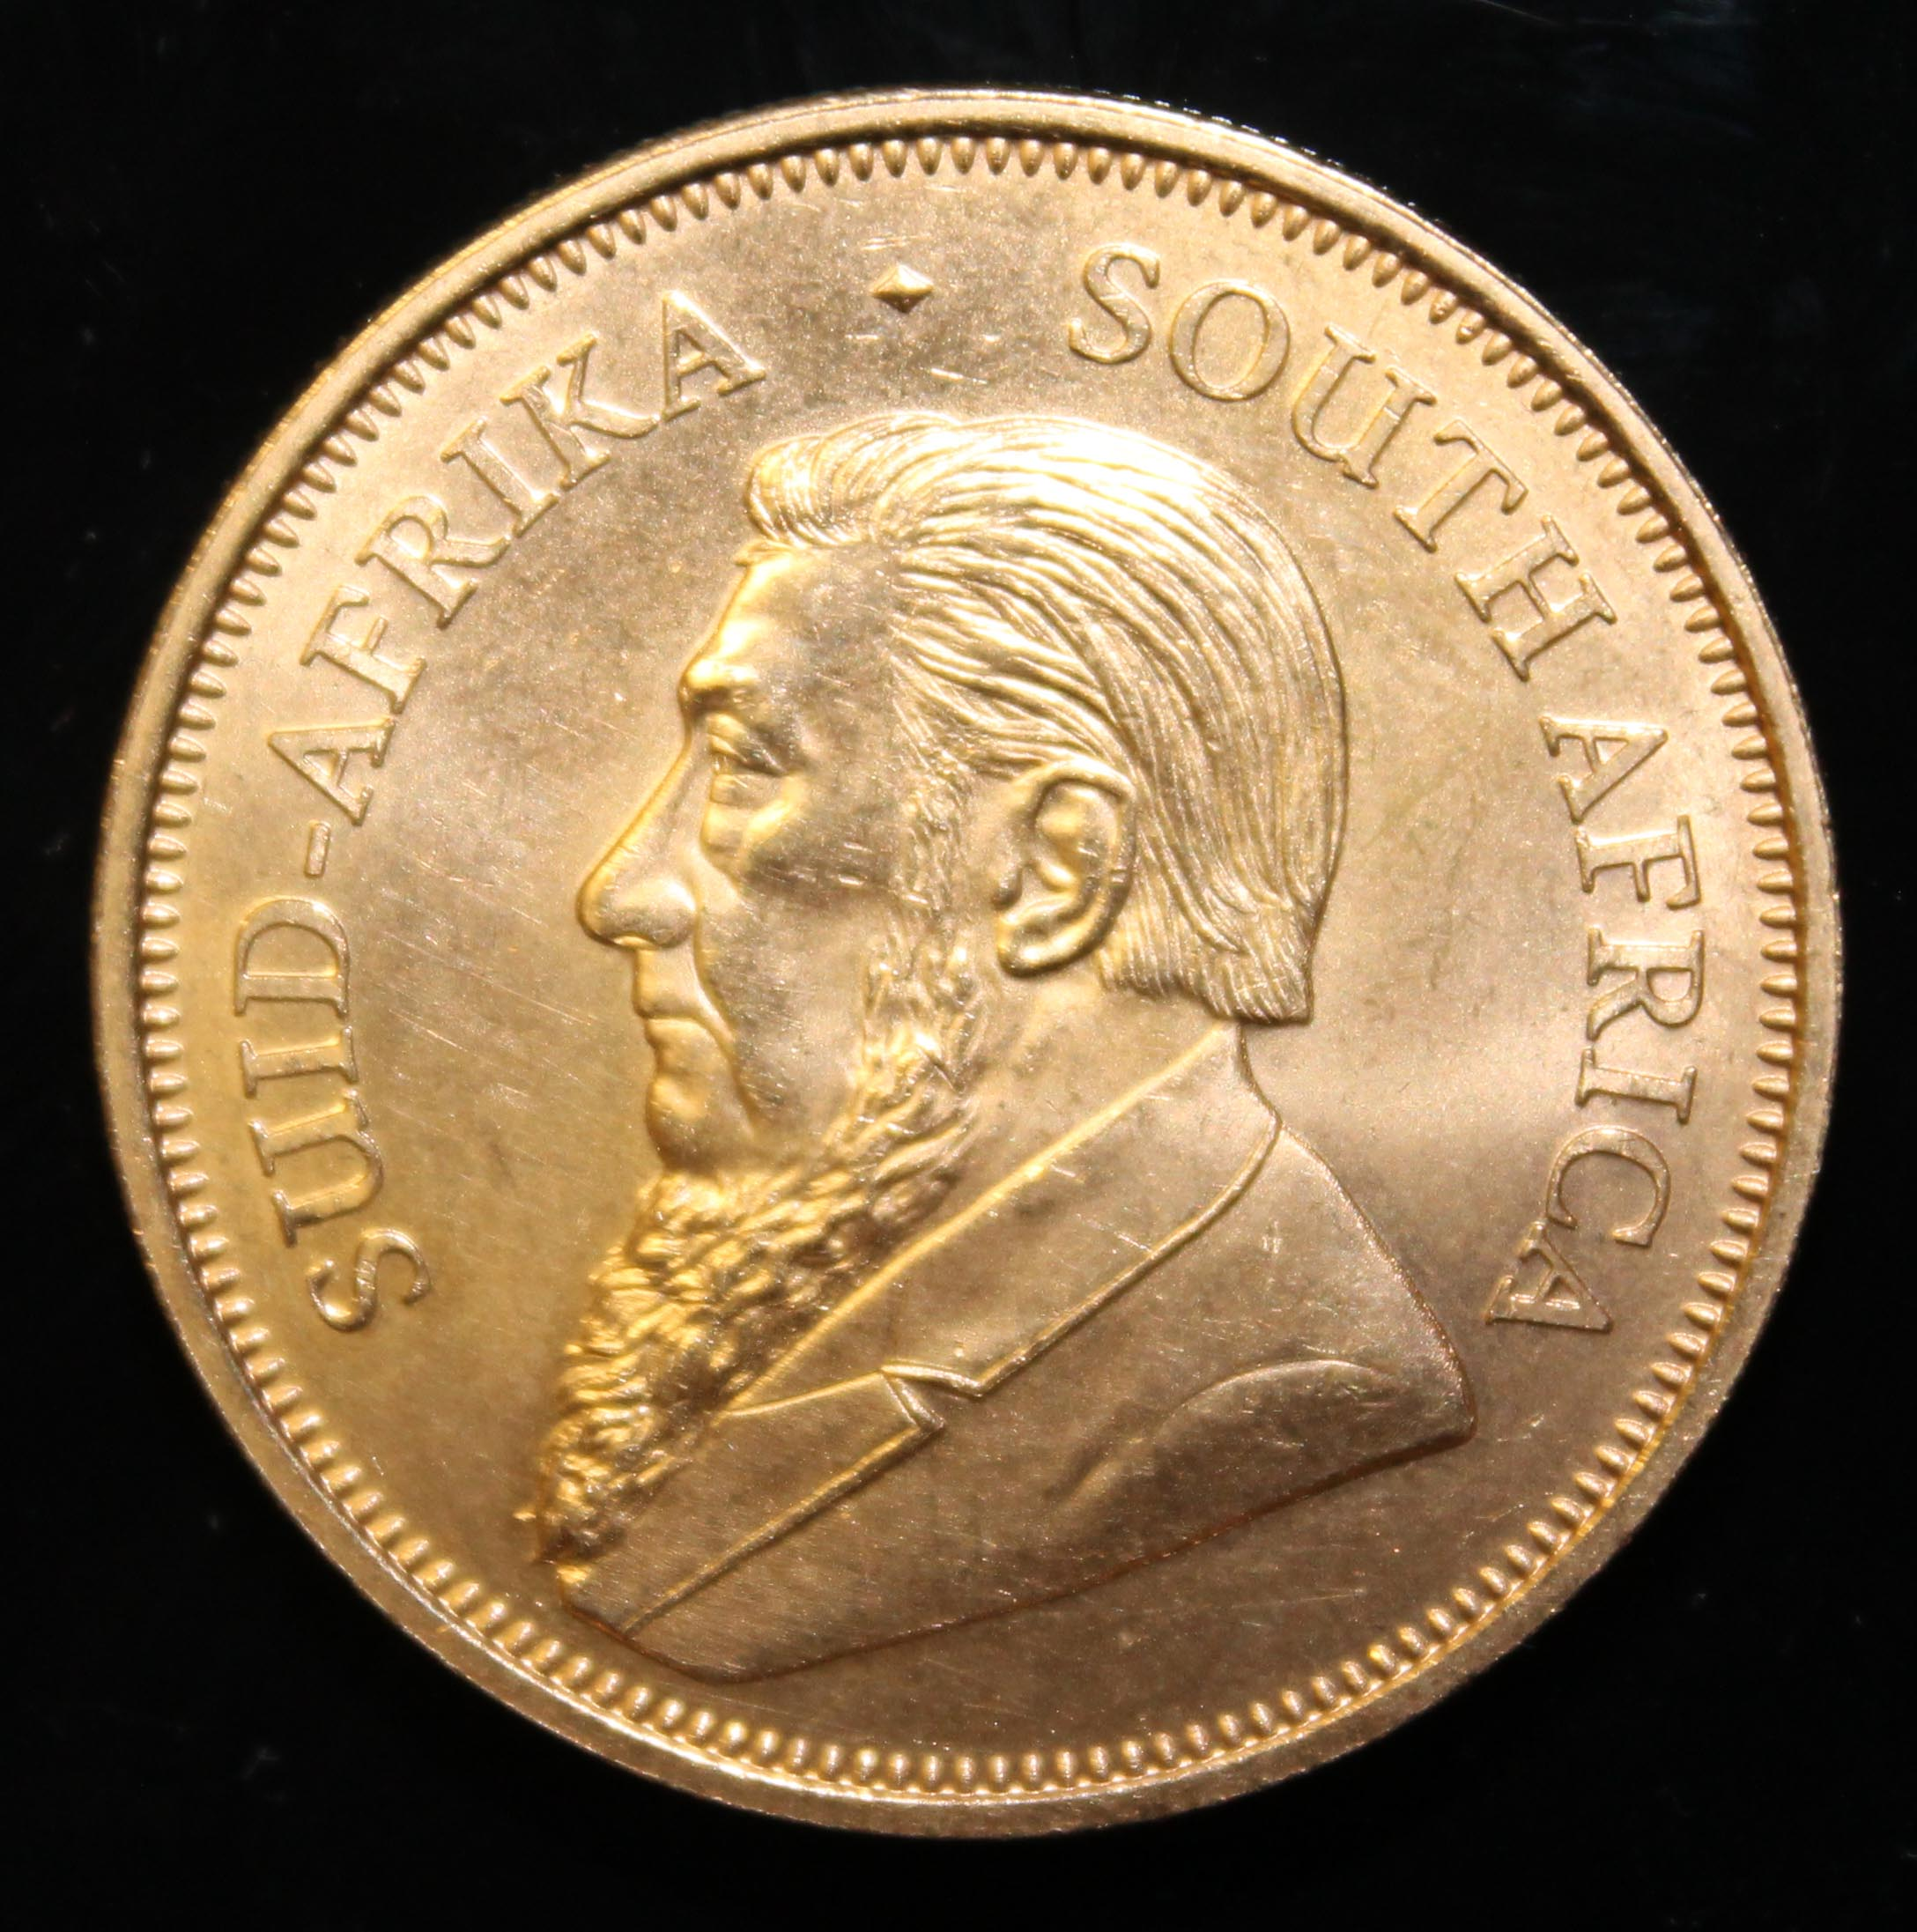 South Africa, 2017 Krugerrand, 1 oz. fine gold (91.67%) ONLY 10% BUYER'S PREMIUM (INCLUSIVE OF